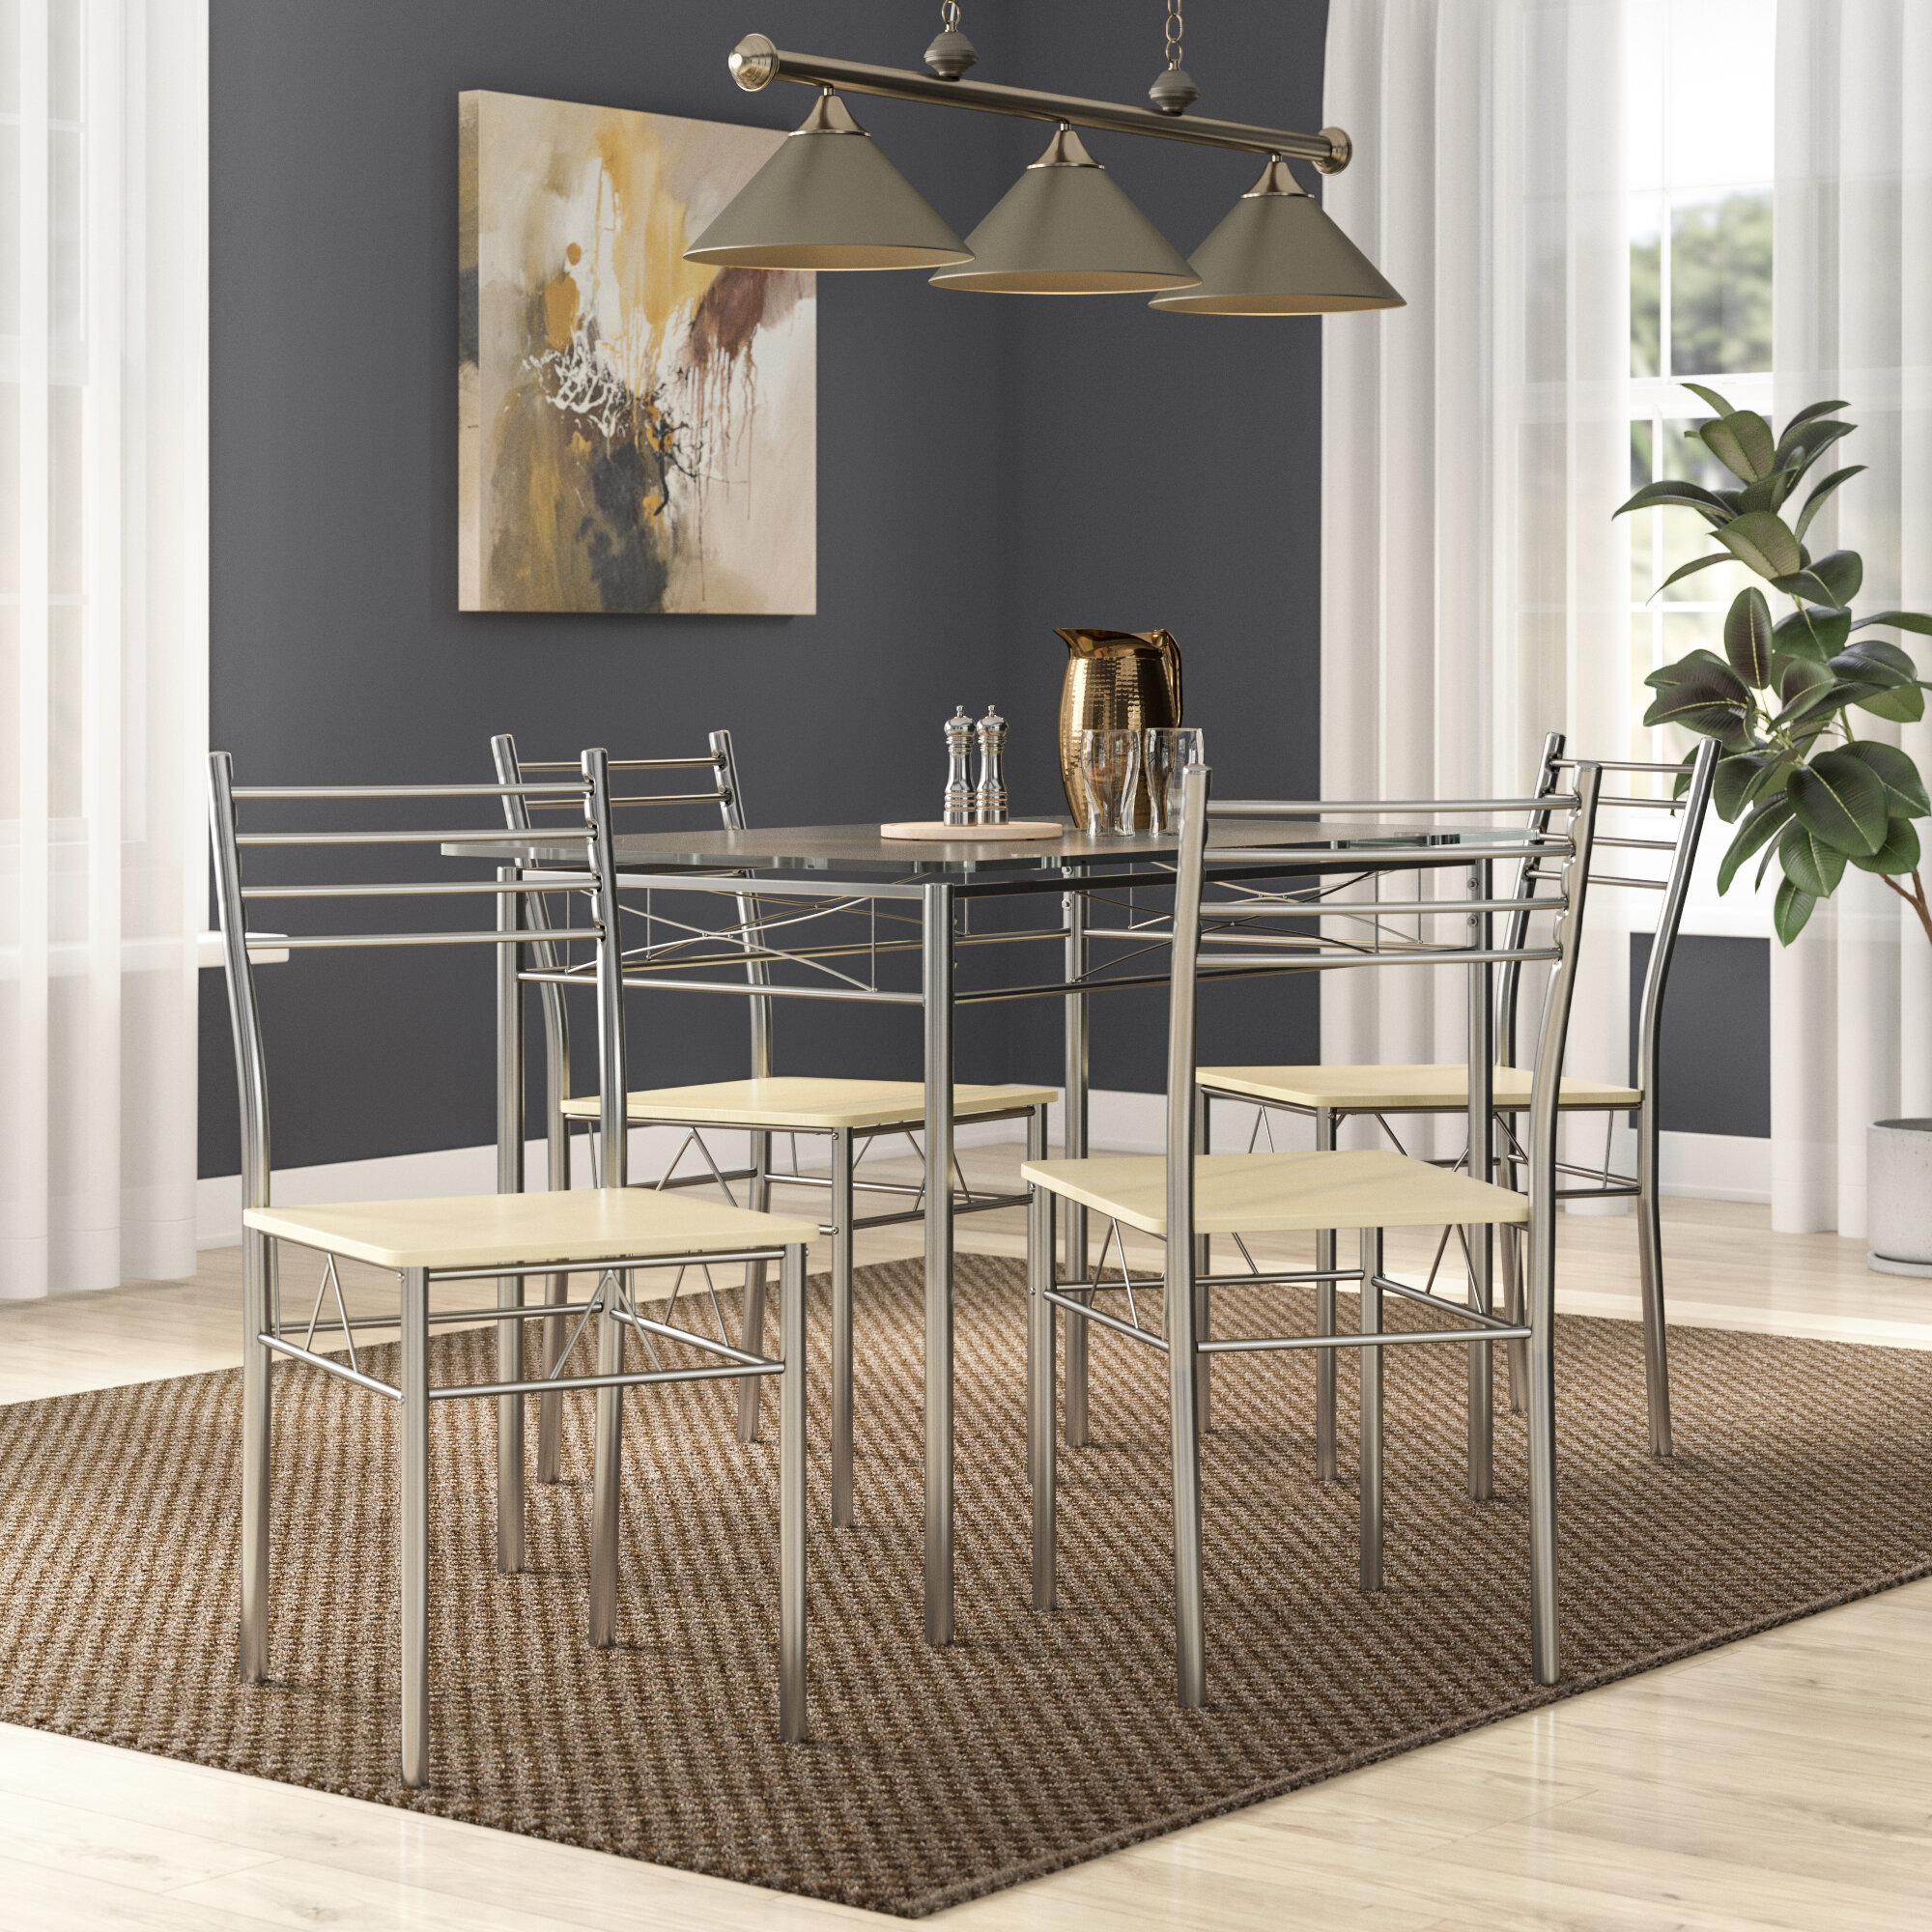 c83fab9cd440 Zipcode Design North Reading 5 Piece Dining Table Set   Reviews ...